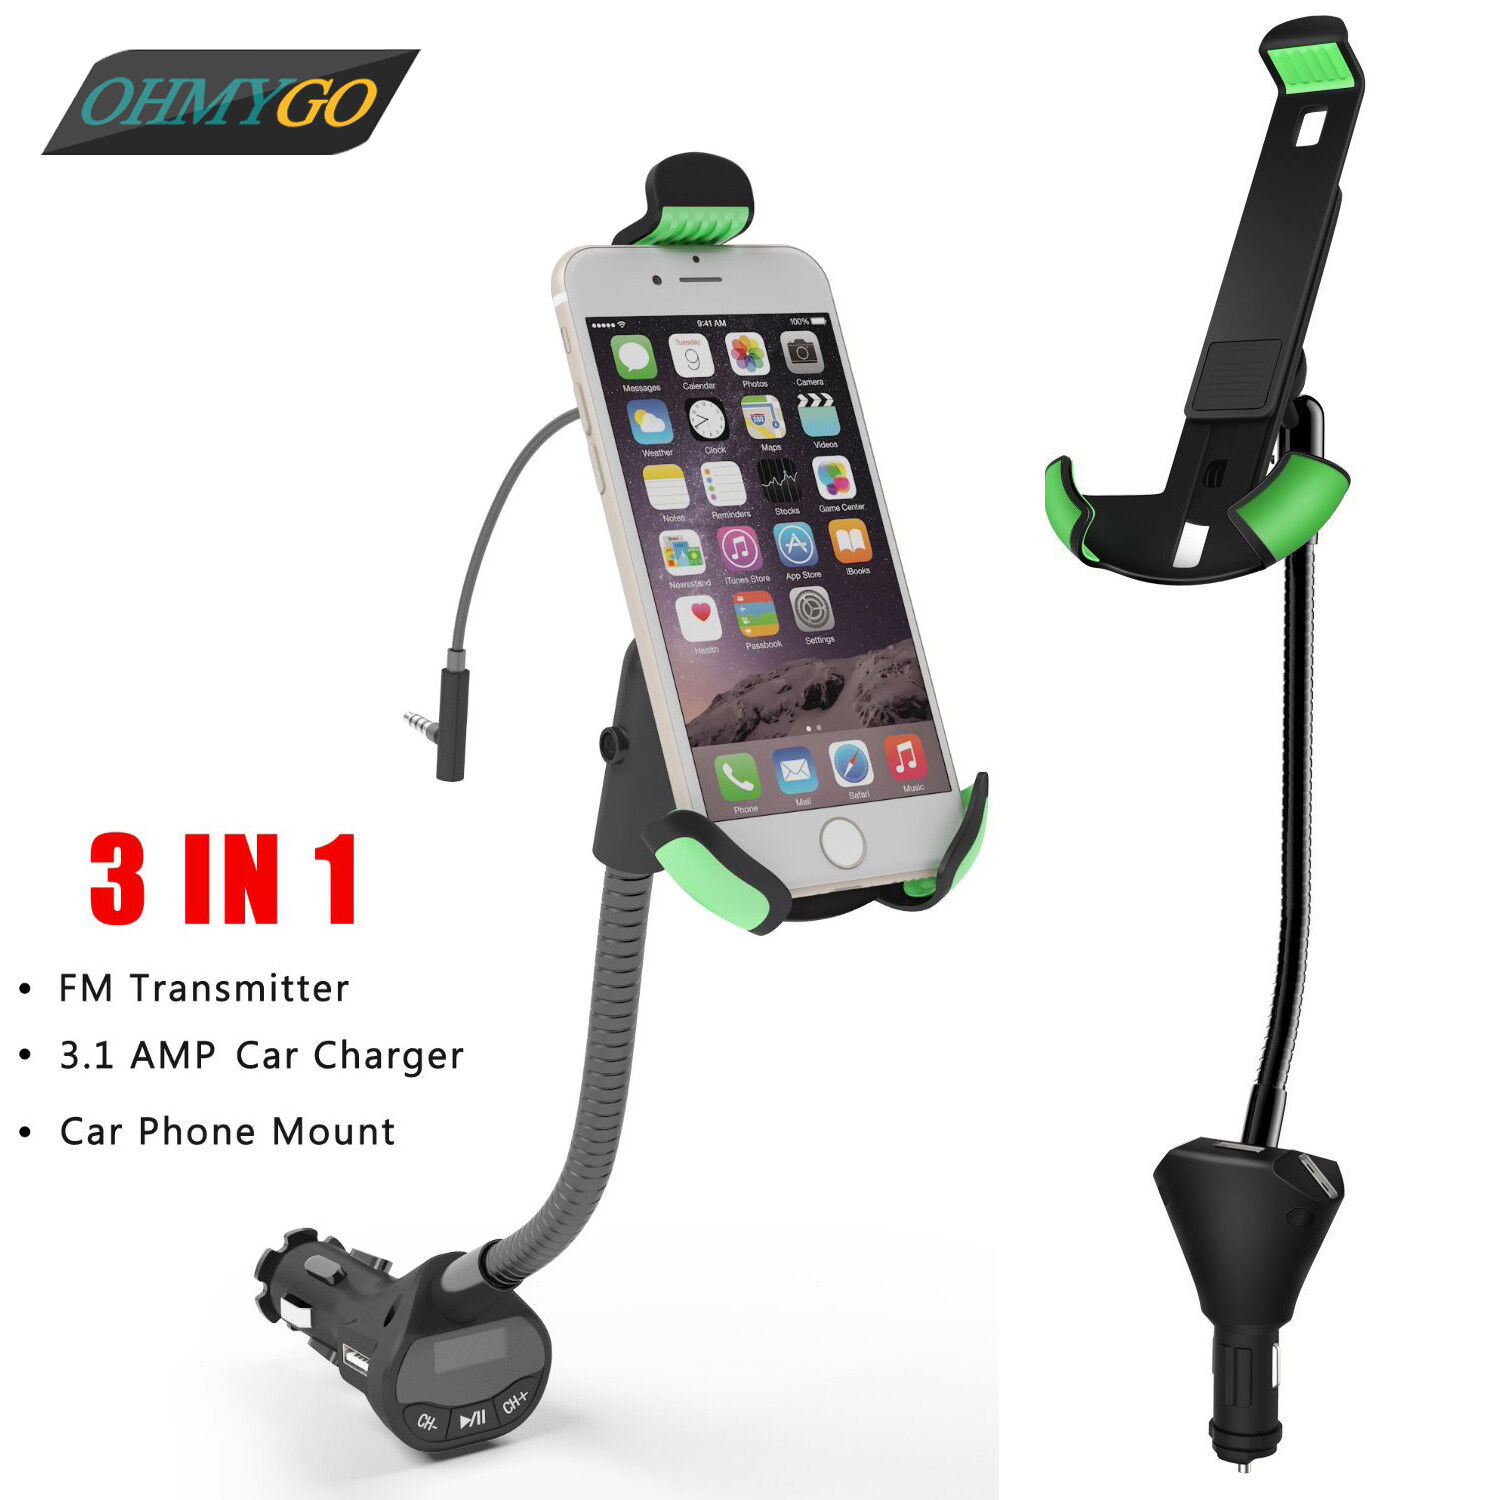 Smart Phone Car Charger /& Universal Mount Premium Series Car Charger /& Universal Mount for All Smartphones /& GPS Devices Travelocity